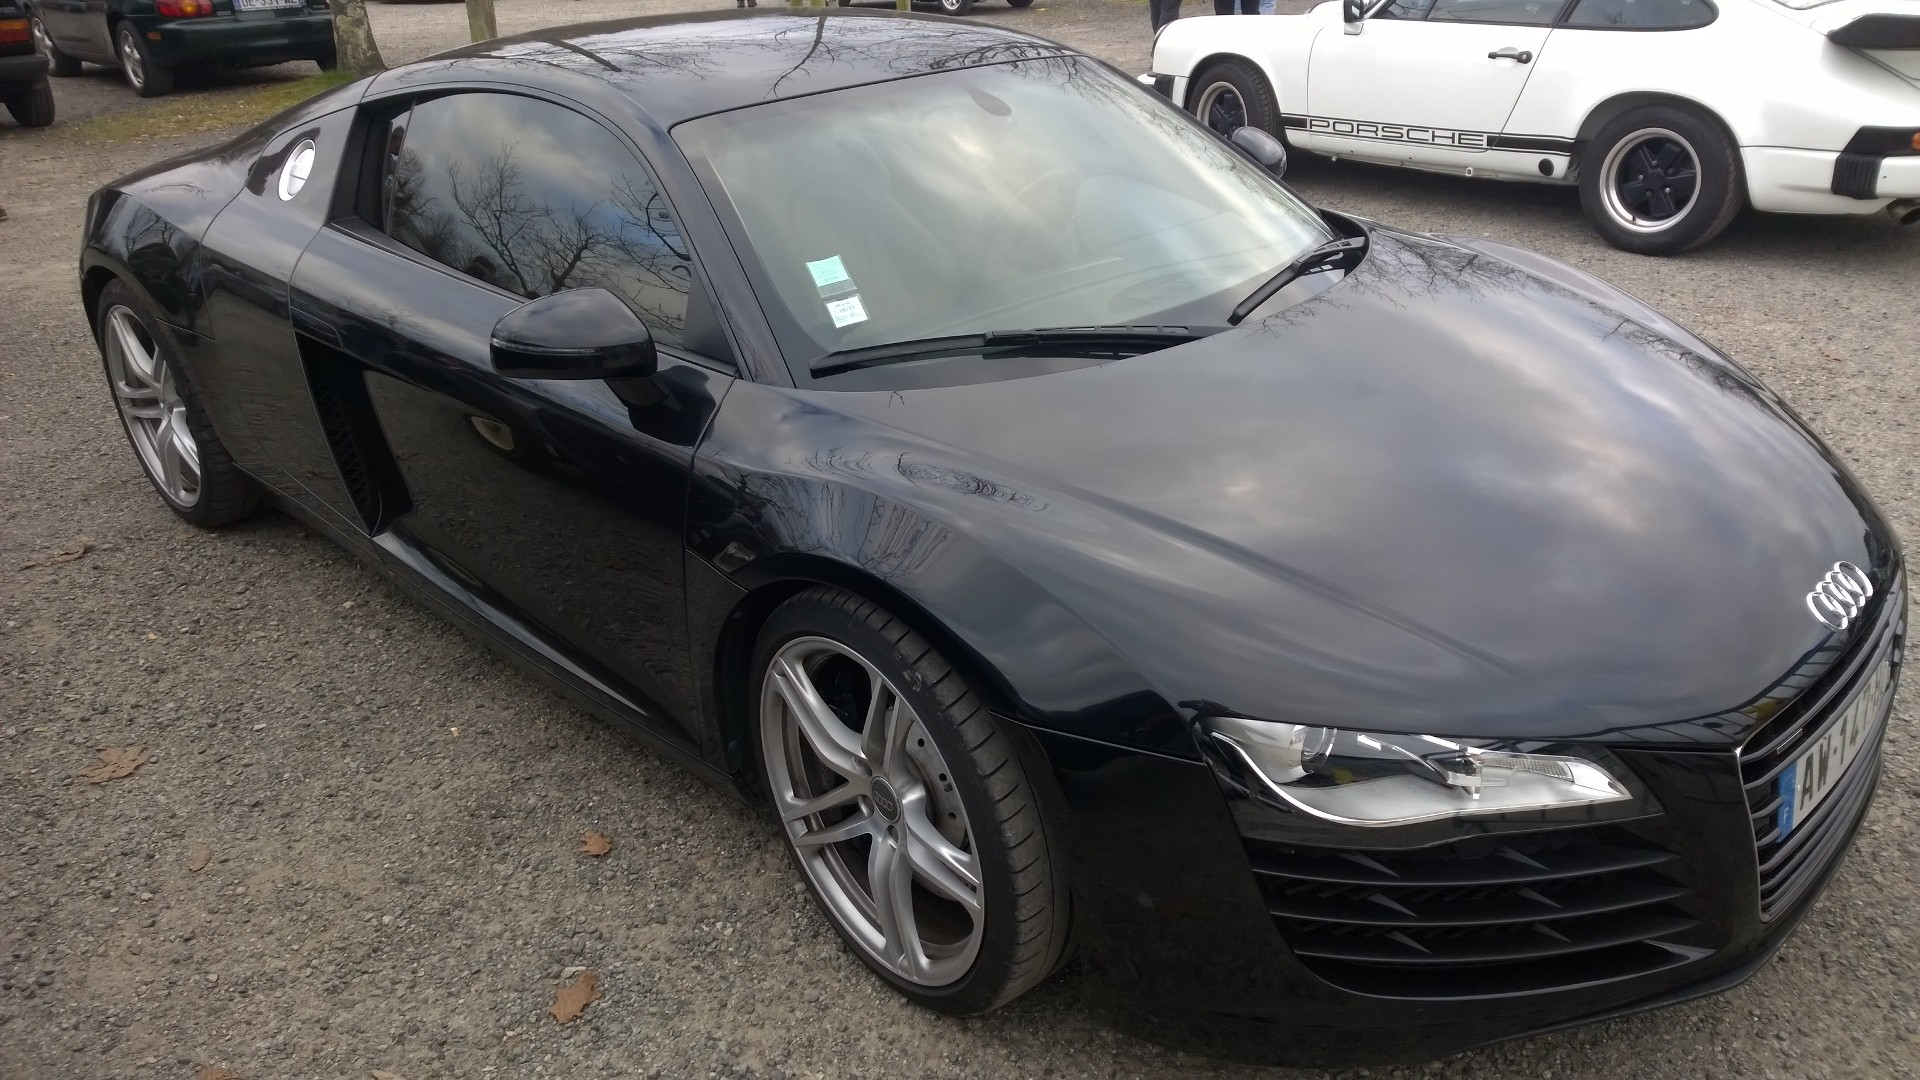 DM photo - Audi R8 - Ouest Motors Festival - 2015 - Lorient